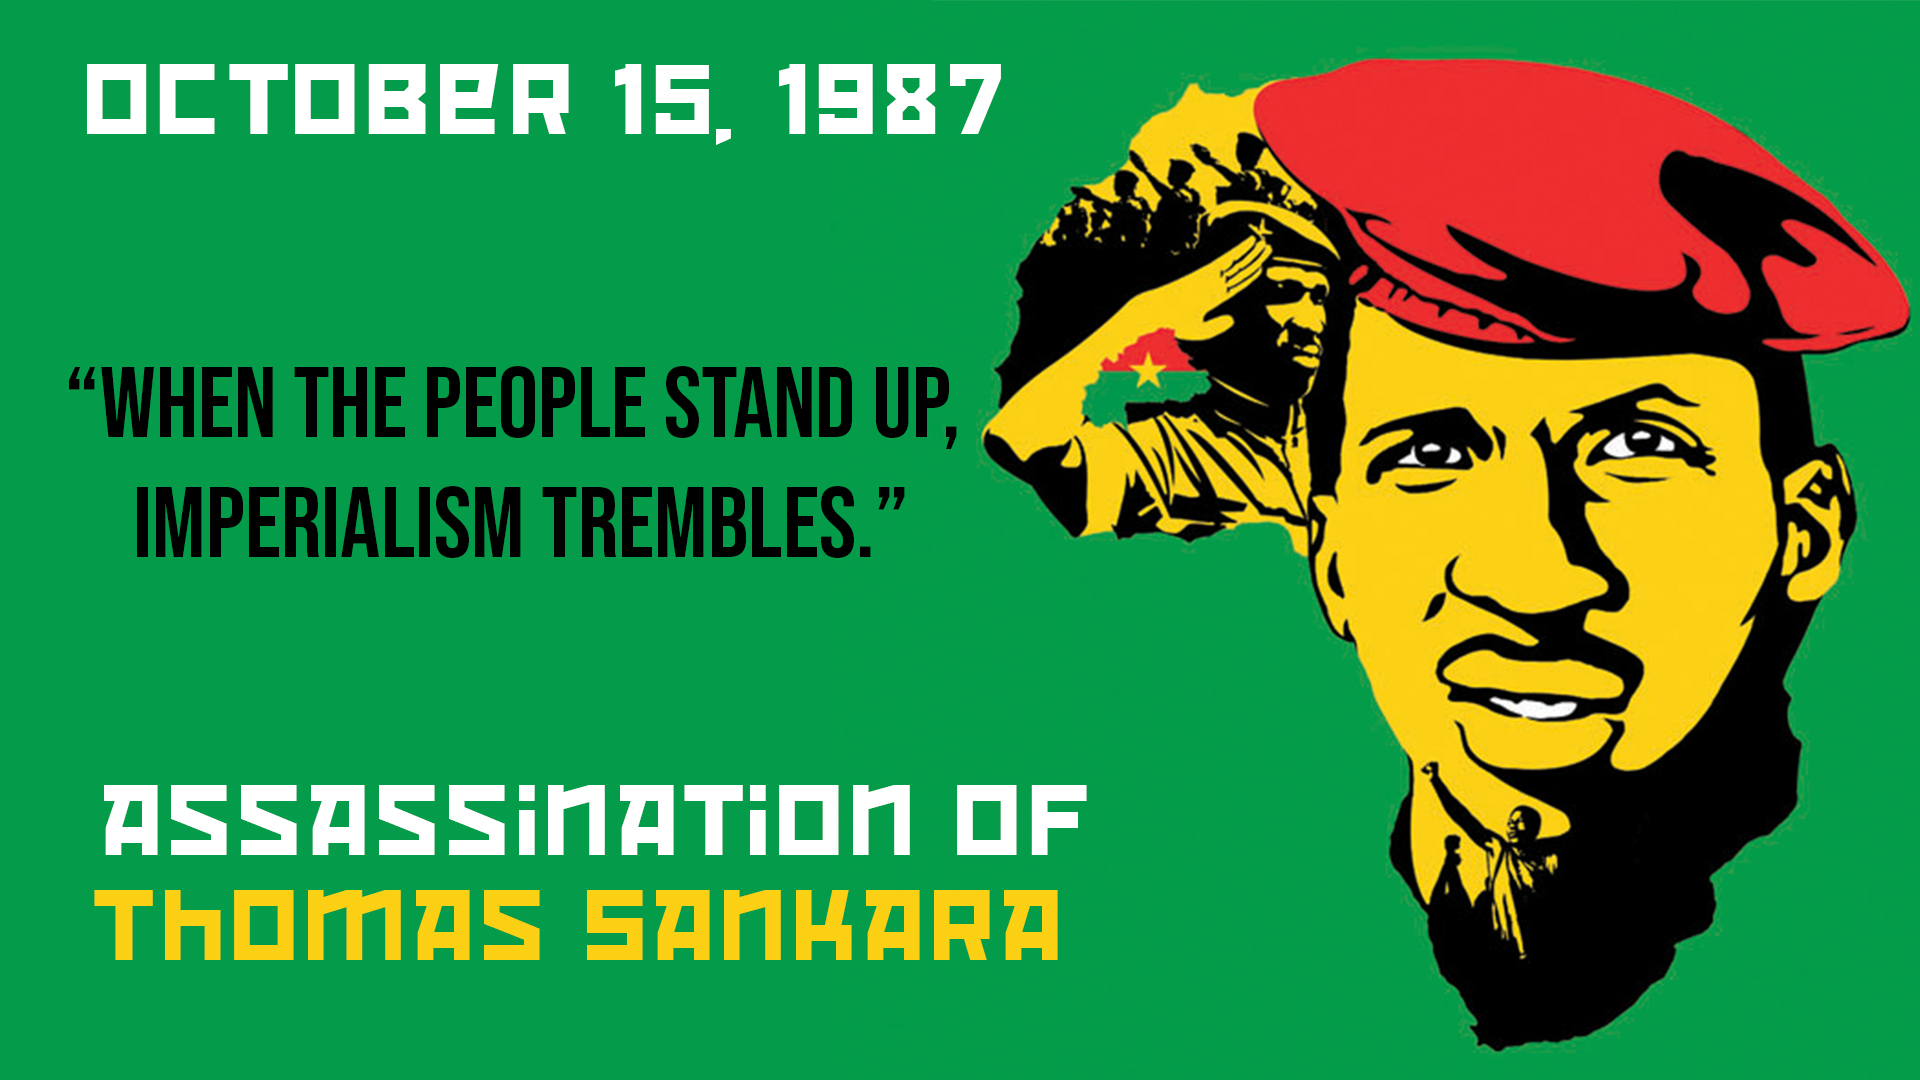 Thomas Sankara assassination